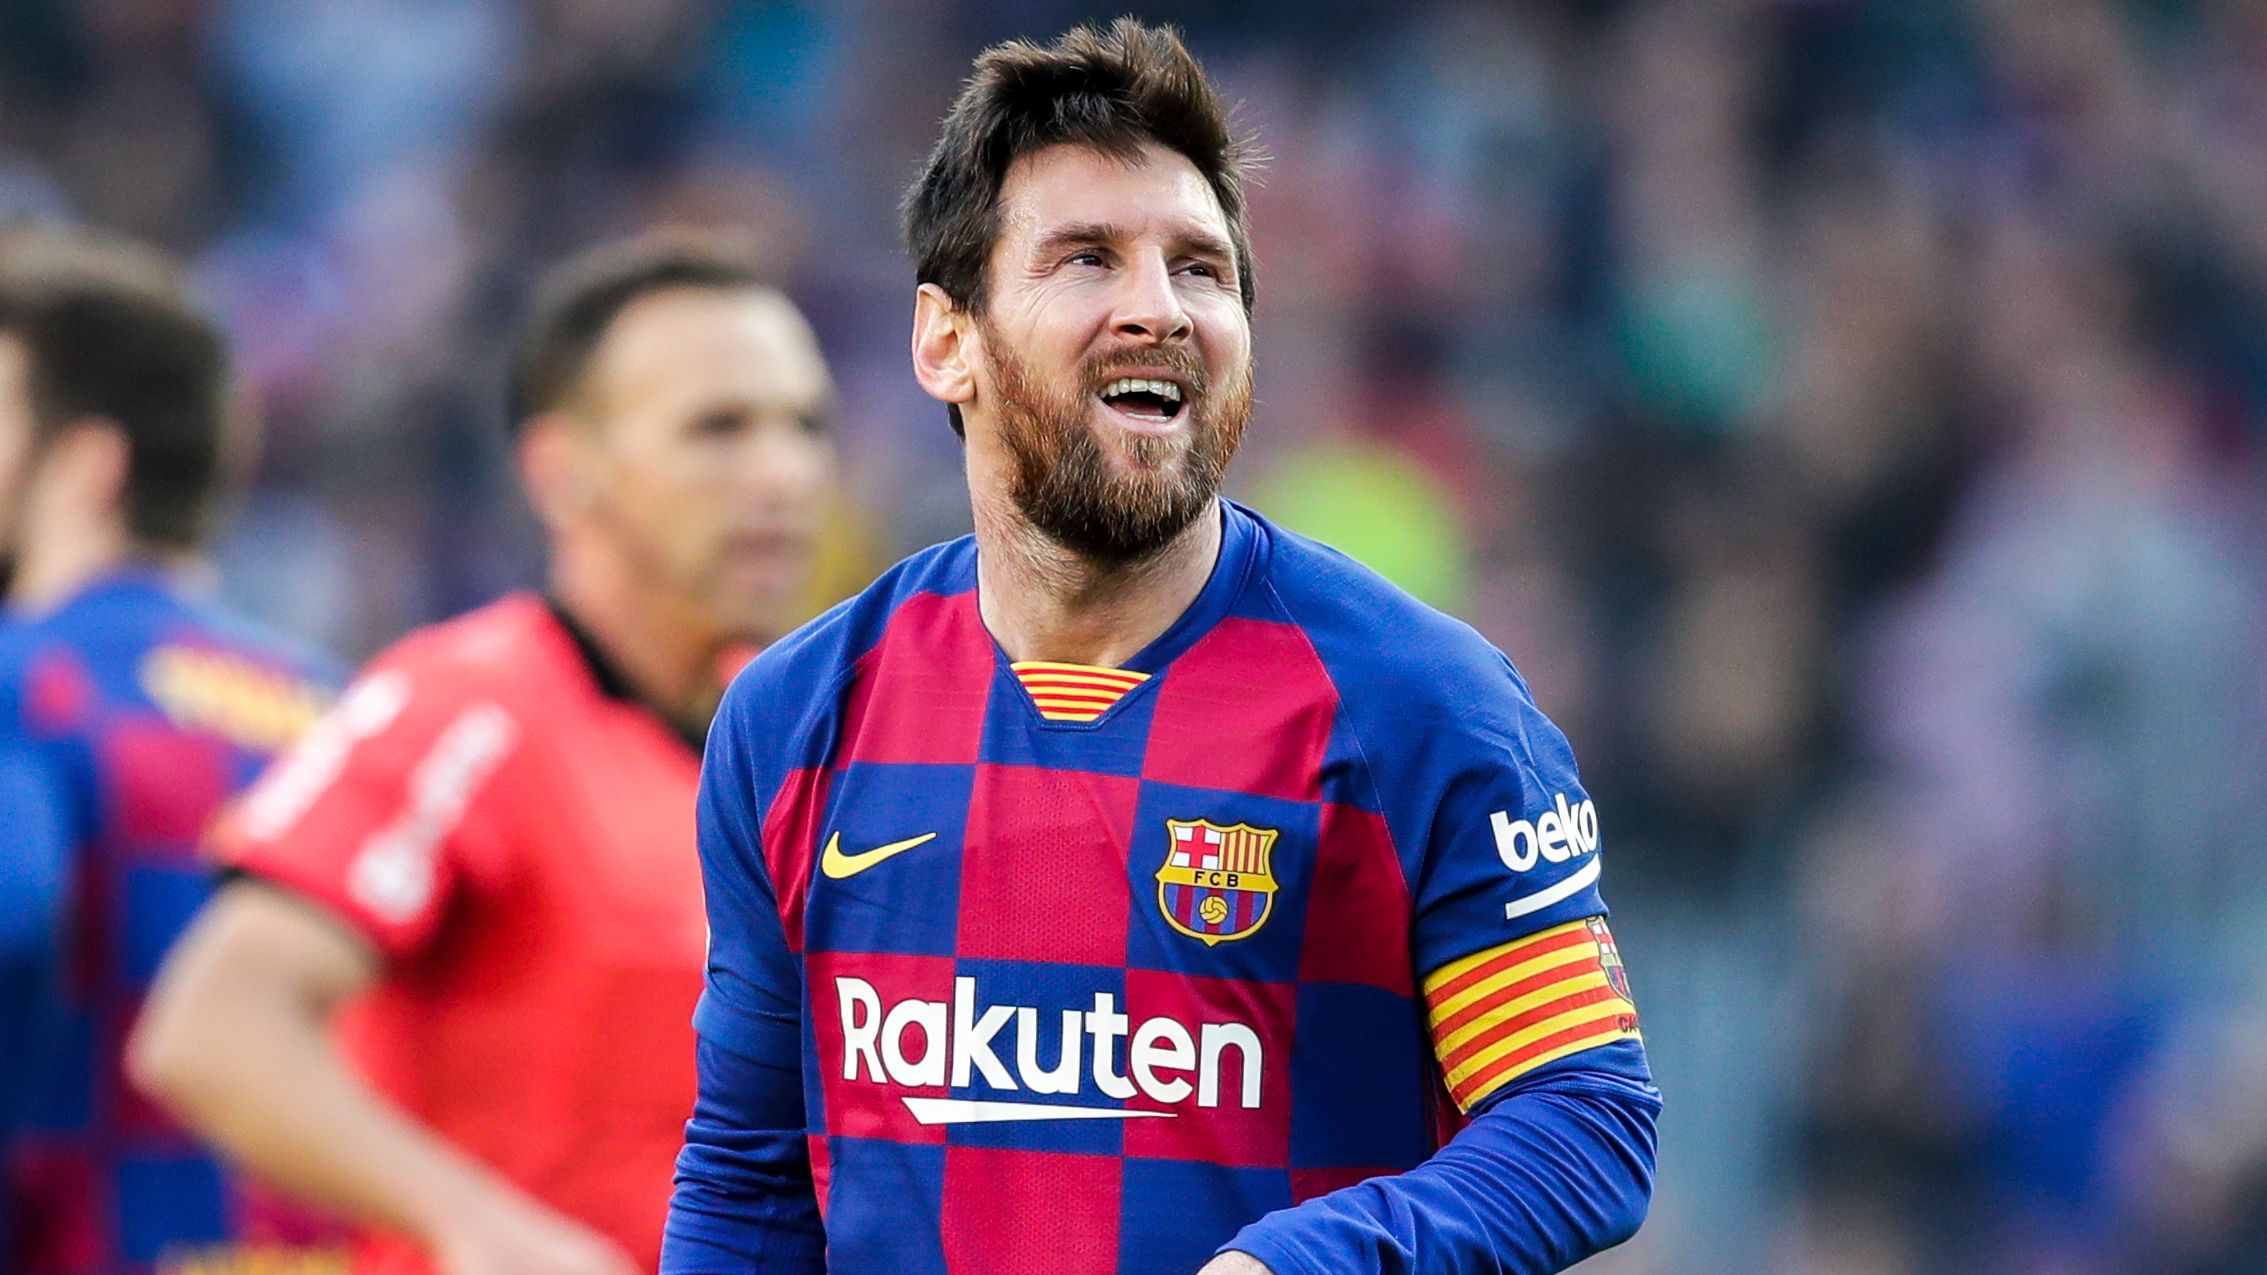 Messi admits to weird happenings at Barcelona after explosive fake news claims